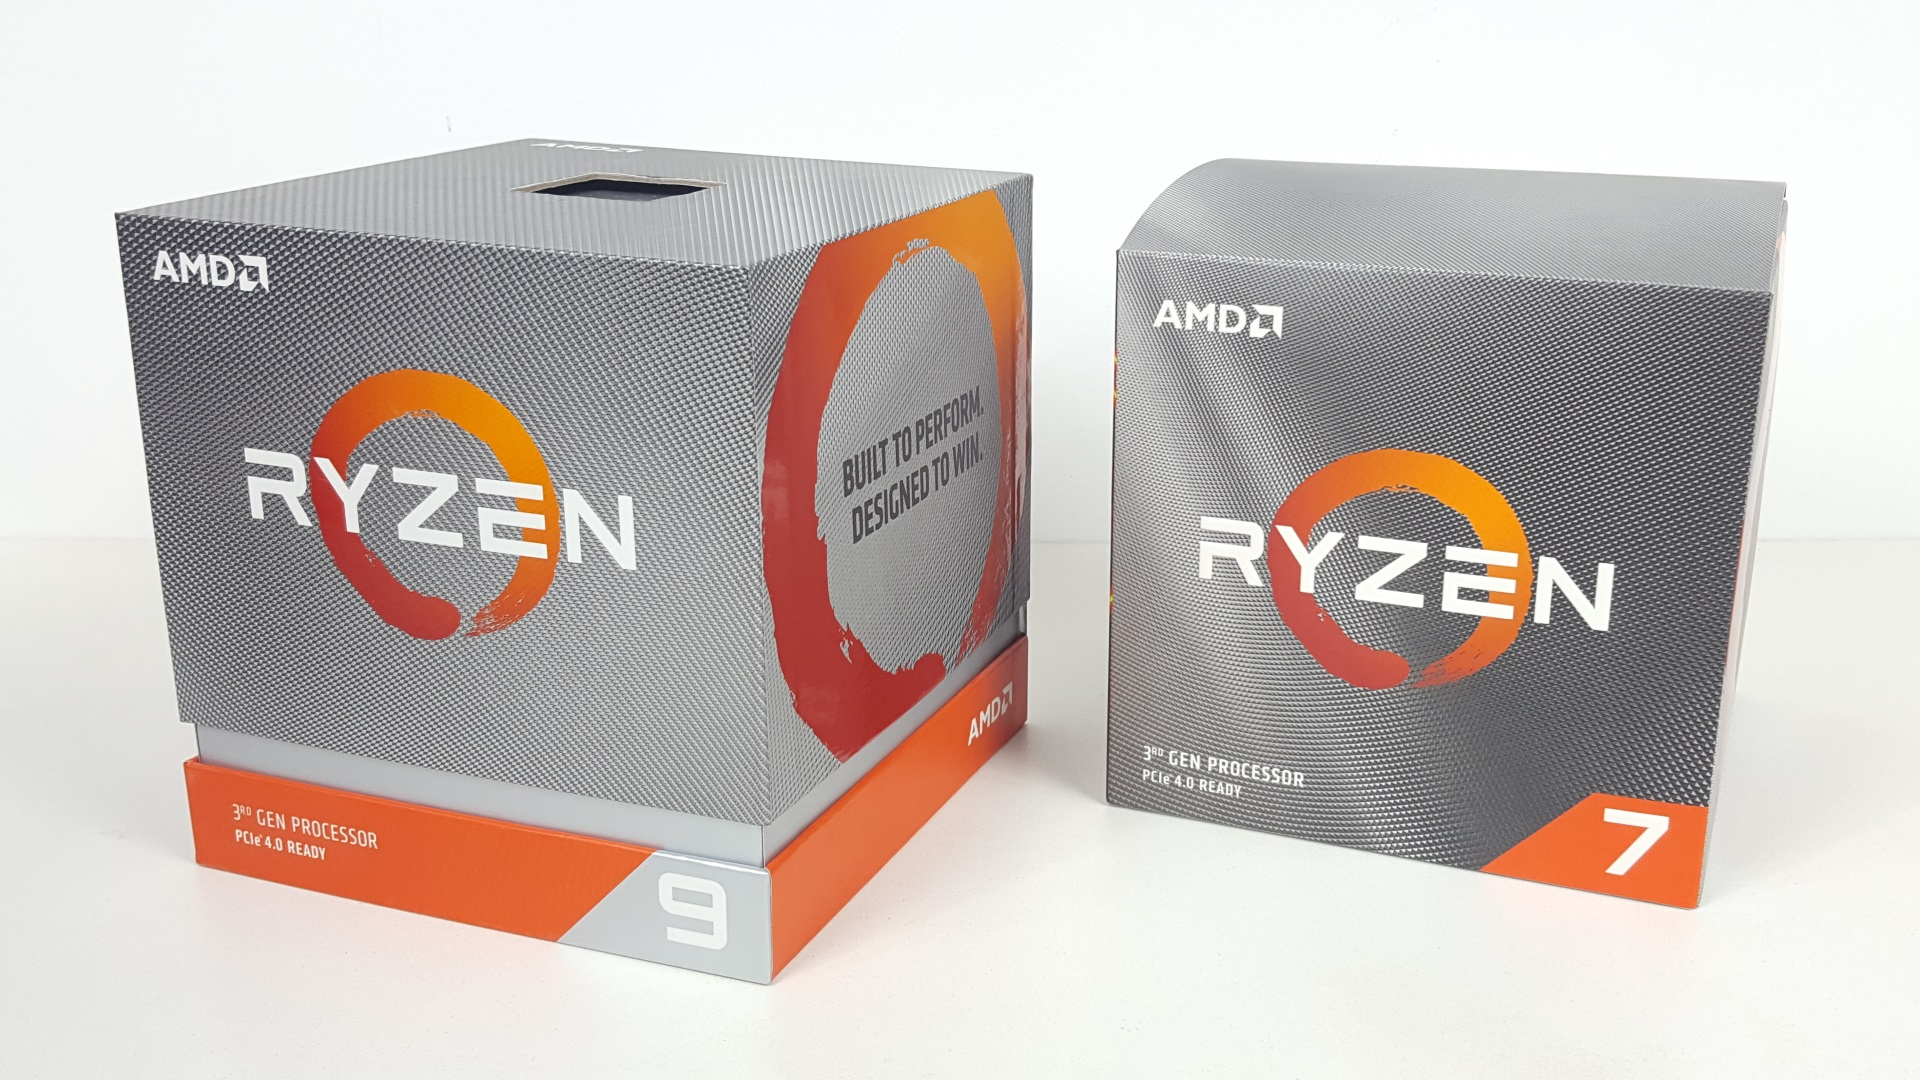 AMD Ryzen 3000 7 nm